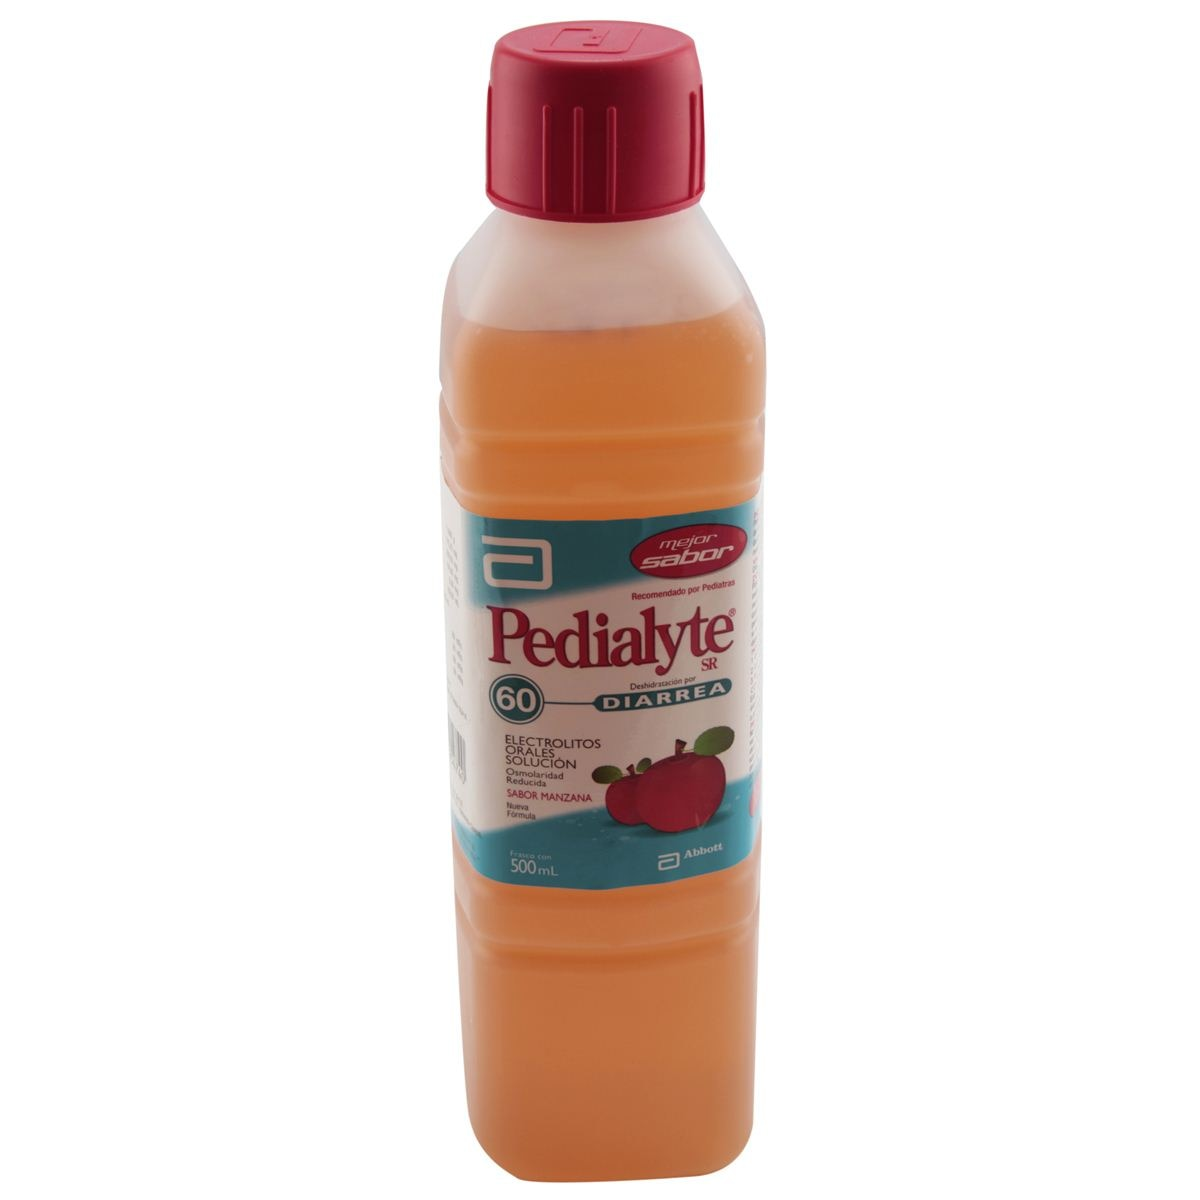 Pedialyte sr 60 500ml manz  - Sanborns